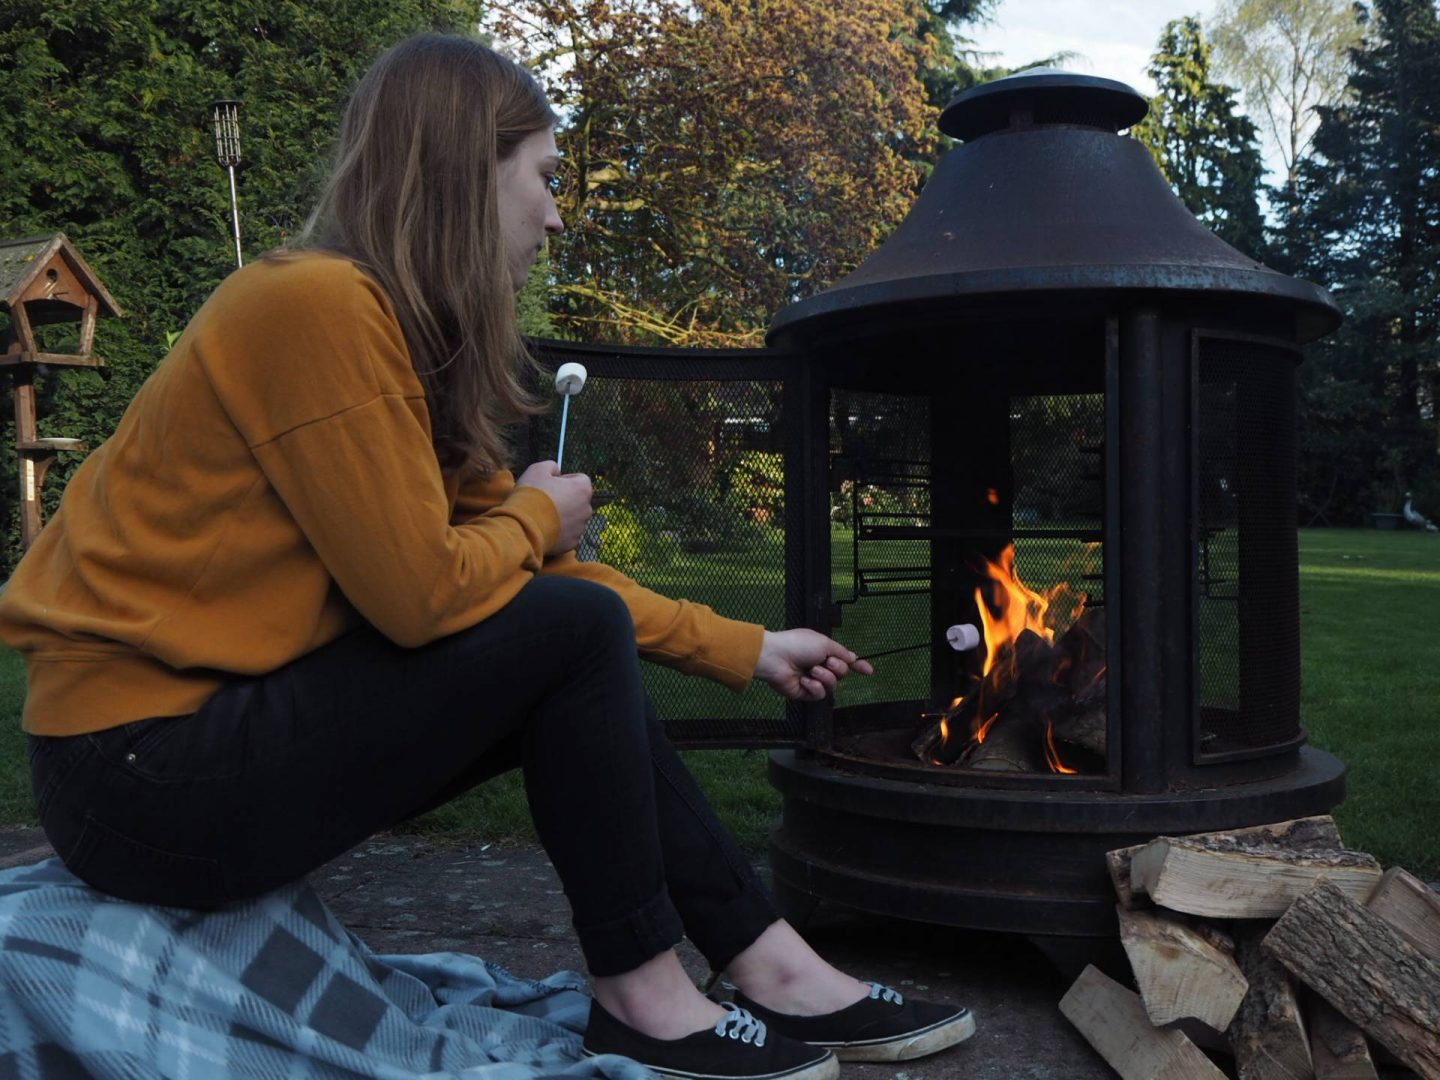 Girl toasting marshmallows on cosy outdoor fire